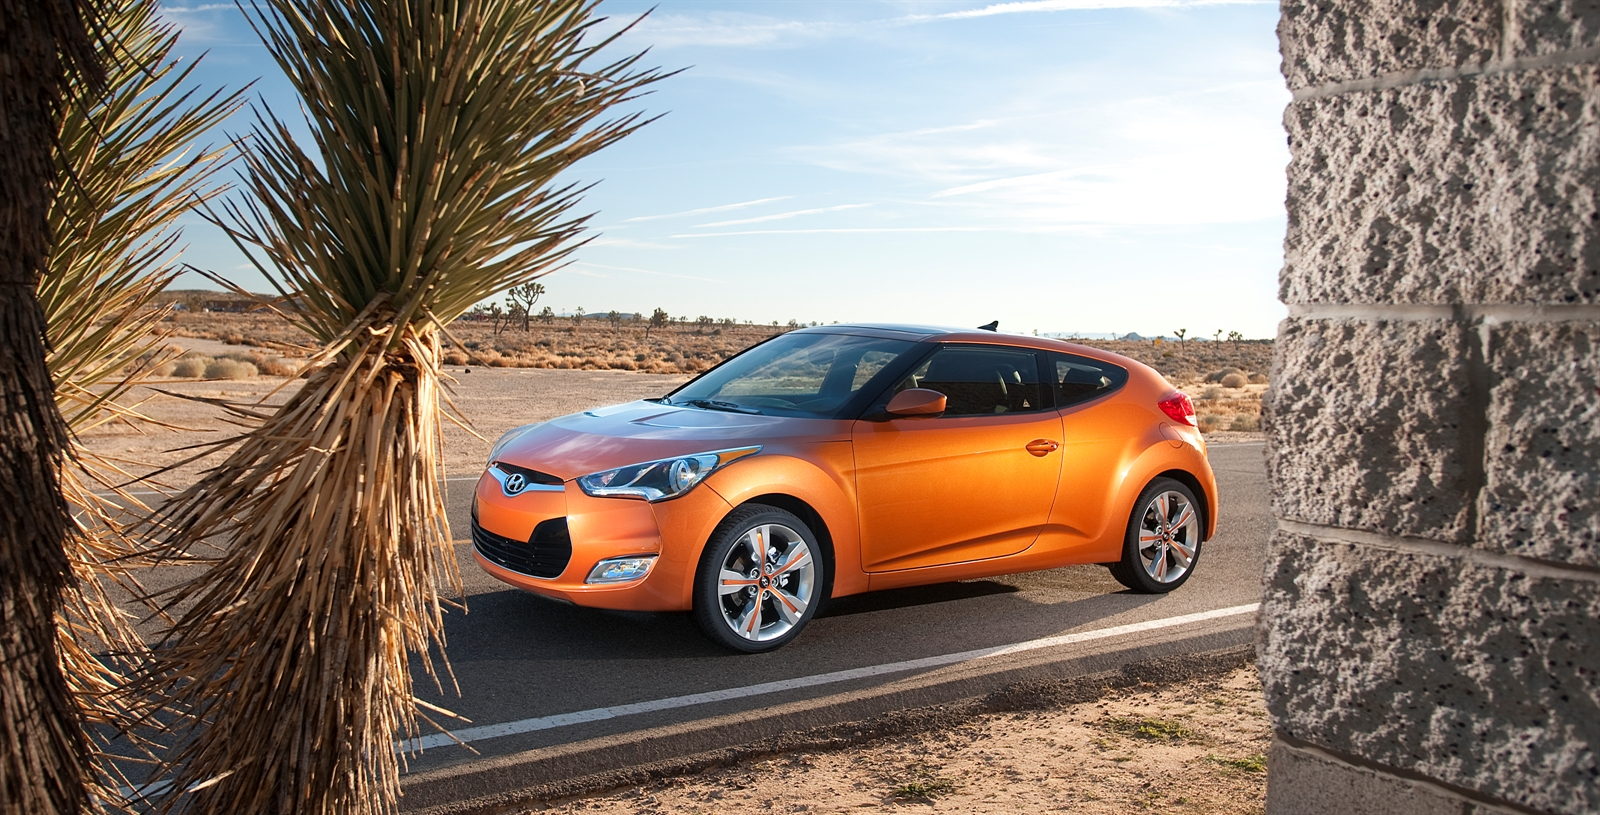 2013 Hyundai Veloster - All kinds'a cool.